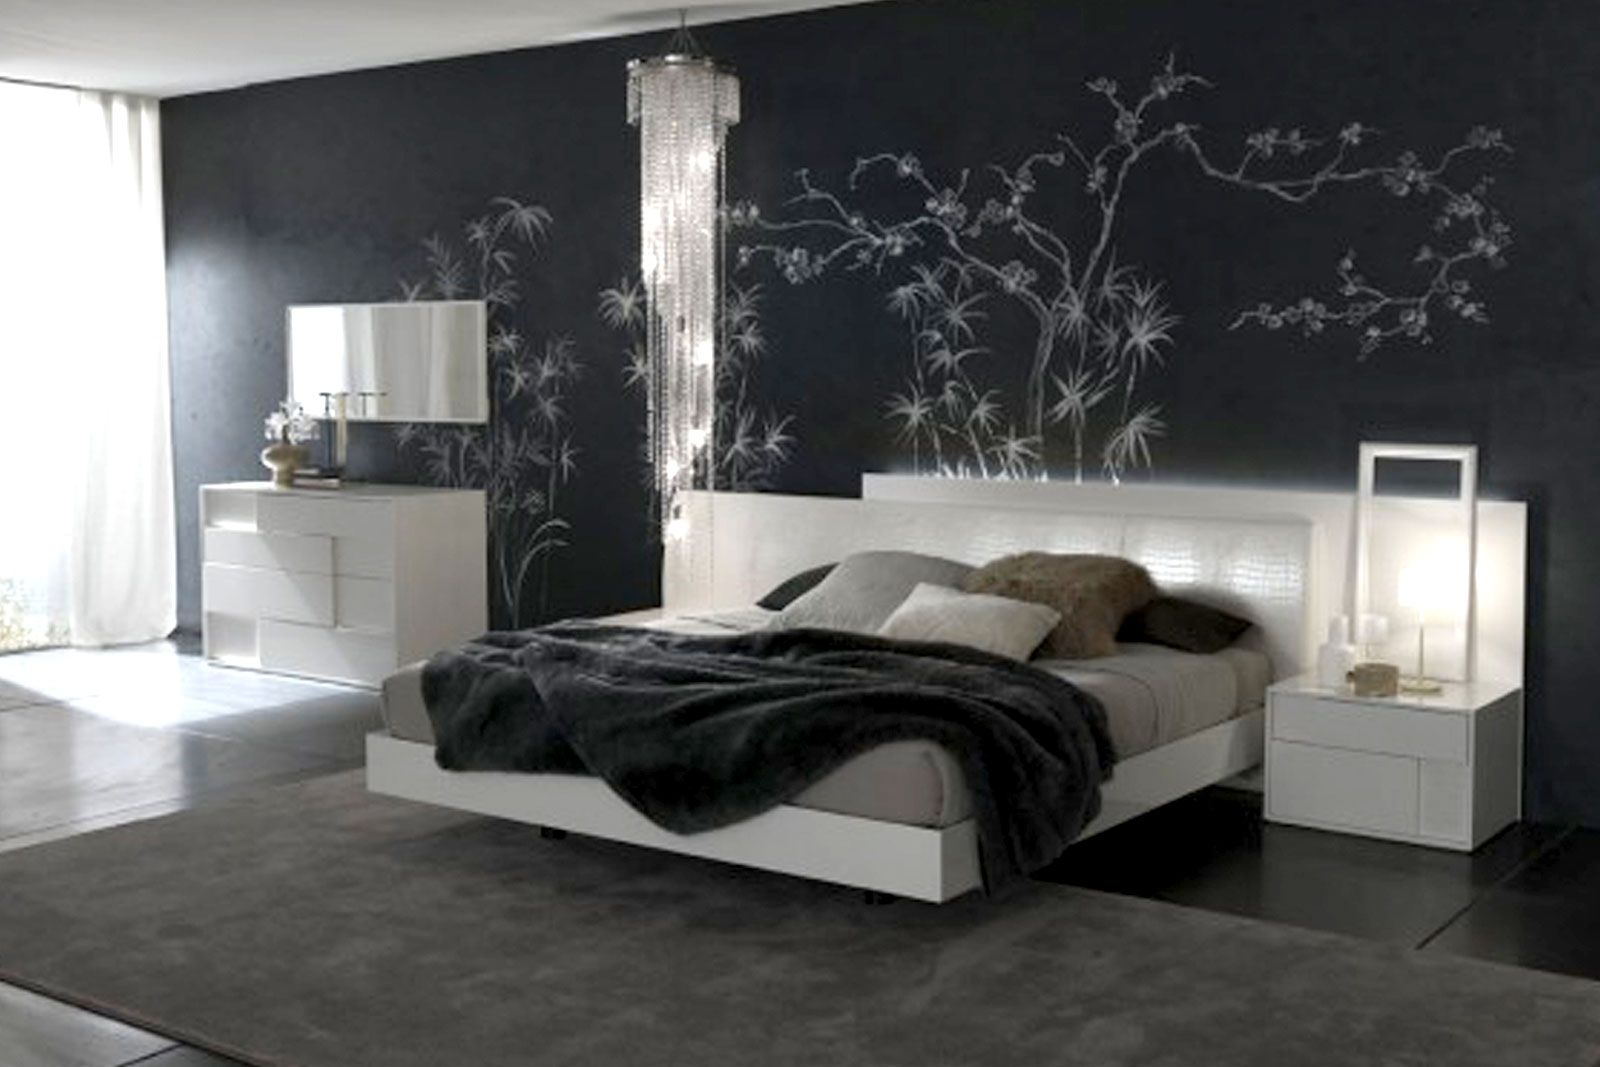 Interior design center inspiration - Deco noir et blanc chambre ...